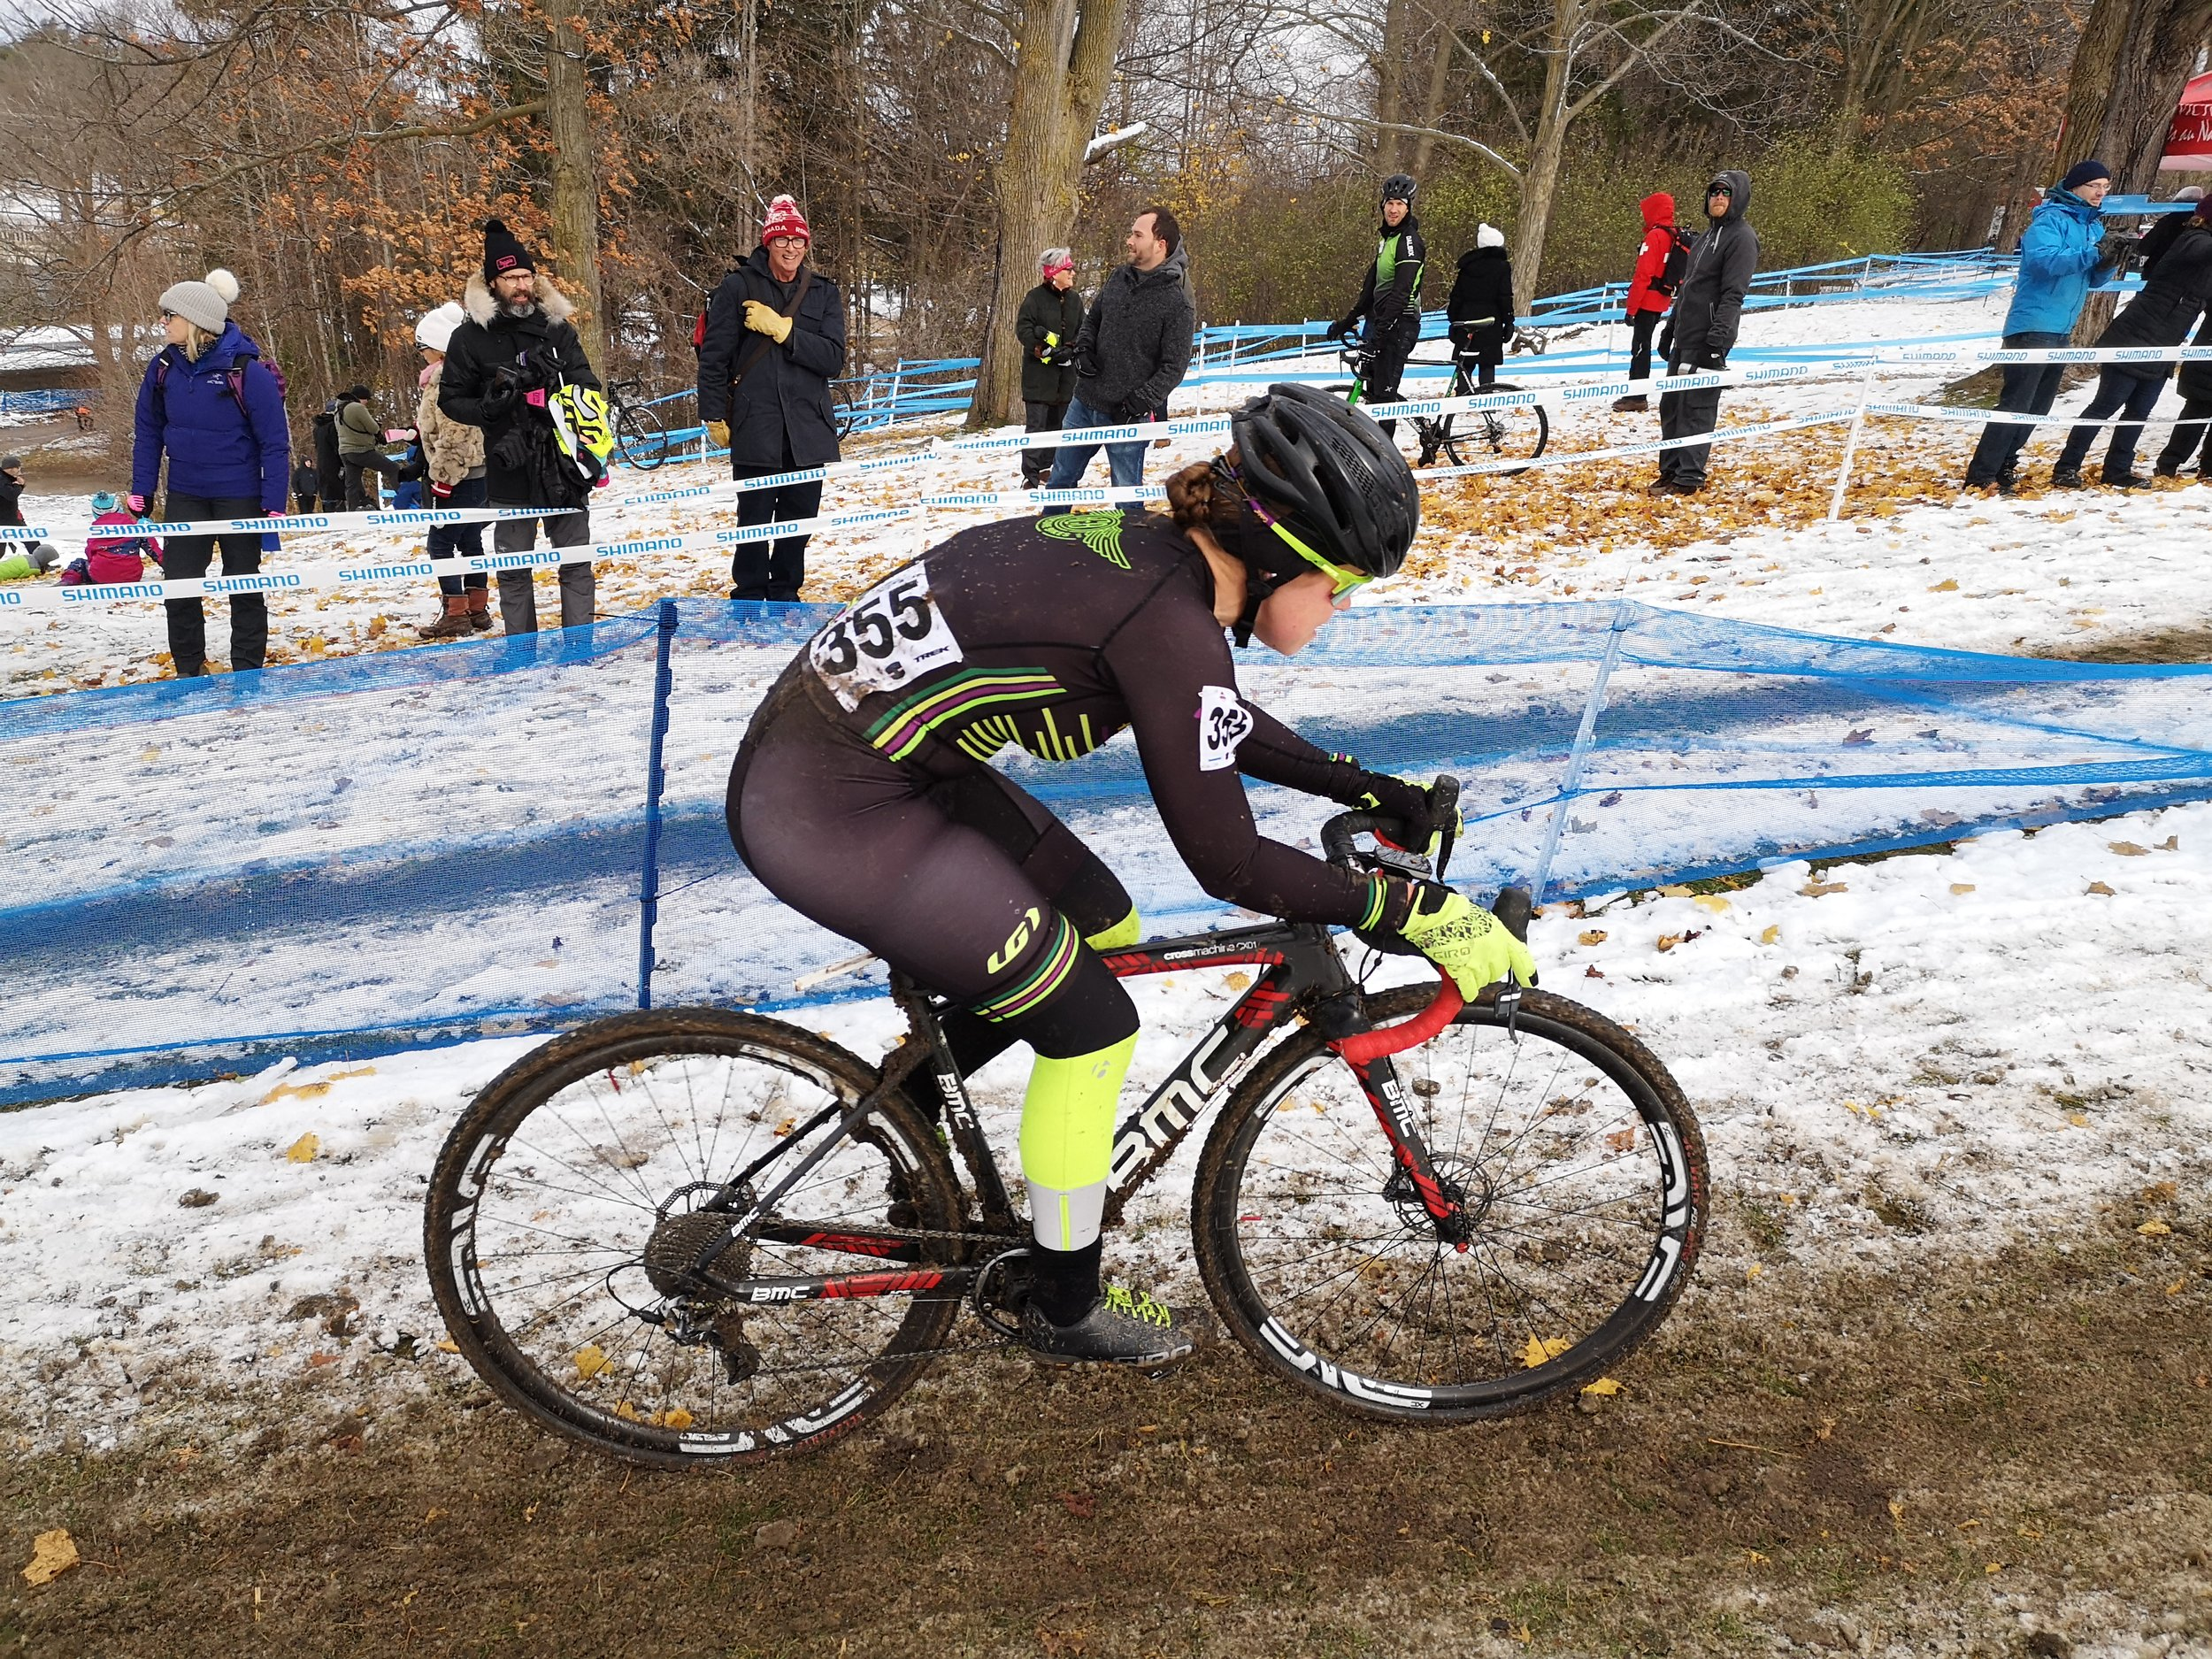 Caitlin Callaghan on her way to a podium finish